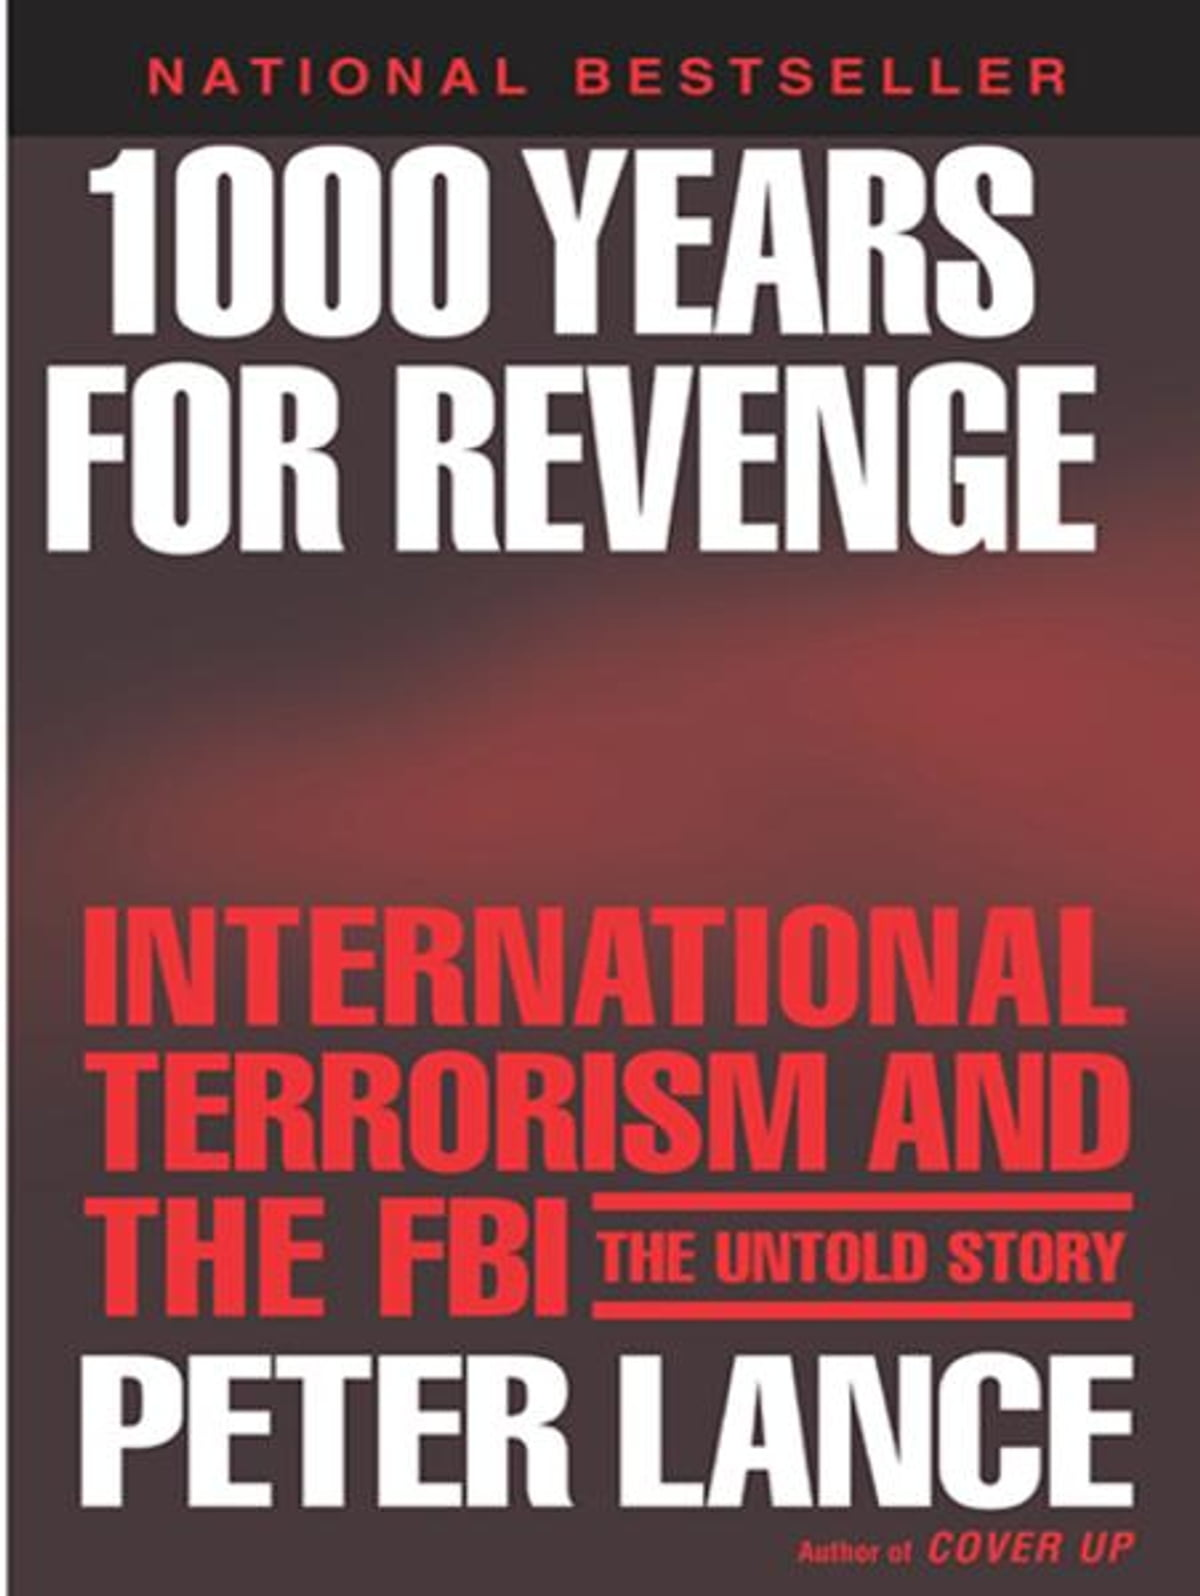 1000 Years for Revenge eBook by Peter Lance - 9780061738128 | Rakuten Kobo